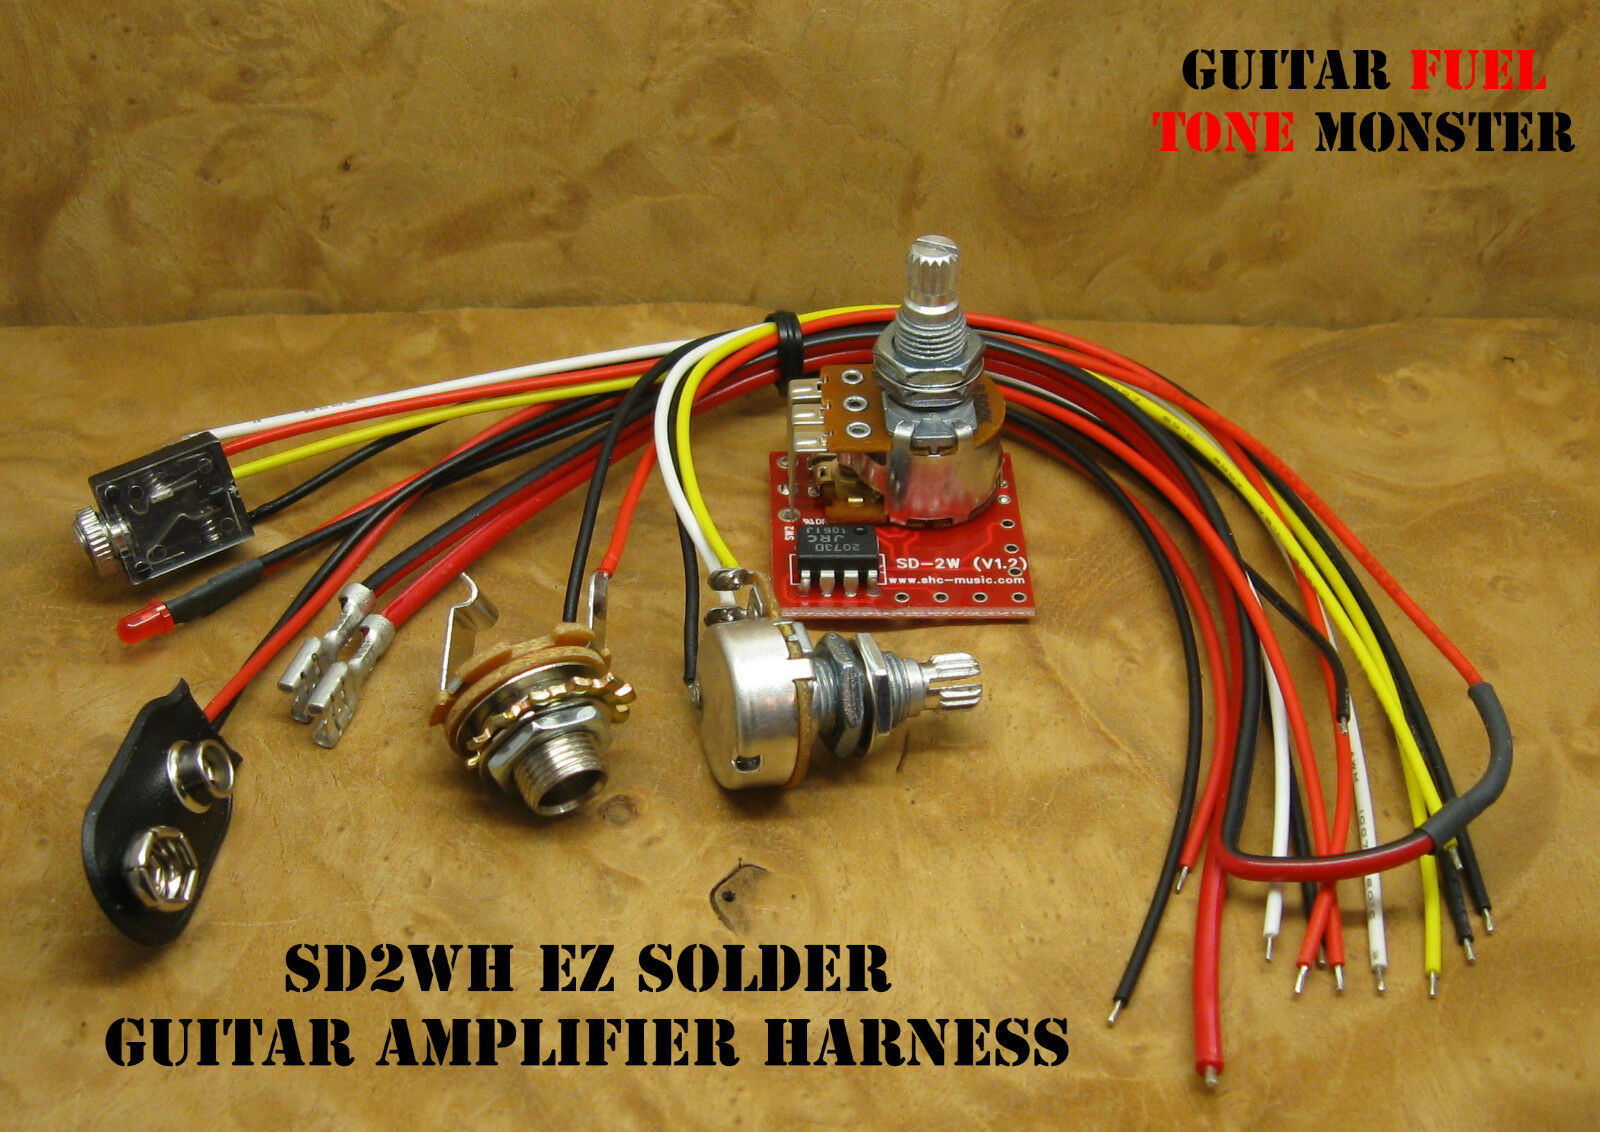 Tone Monster Sd2wc Ez Solder Guitar Amp Amplifier Harness 2w Volume How To Build Mini Box 1 Of See More